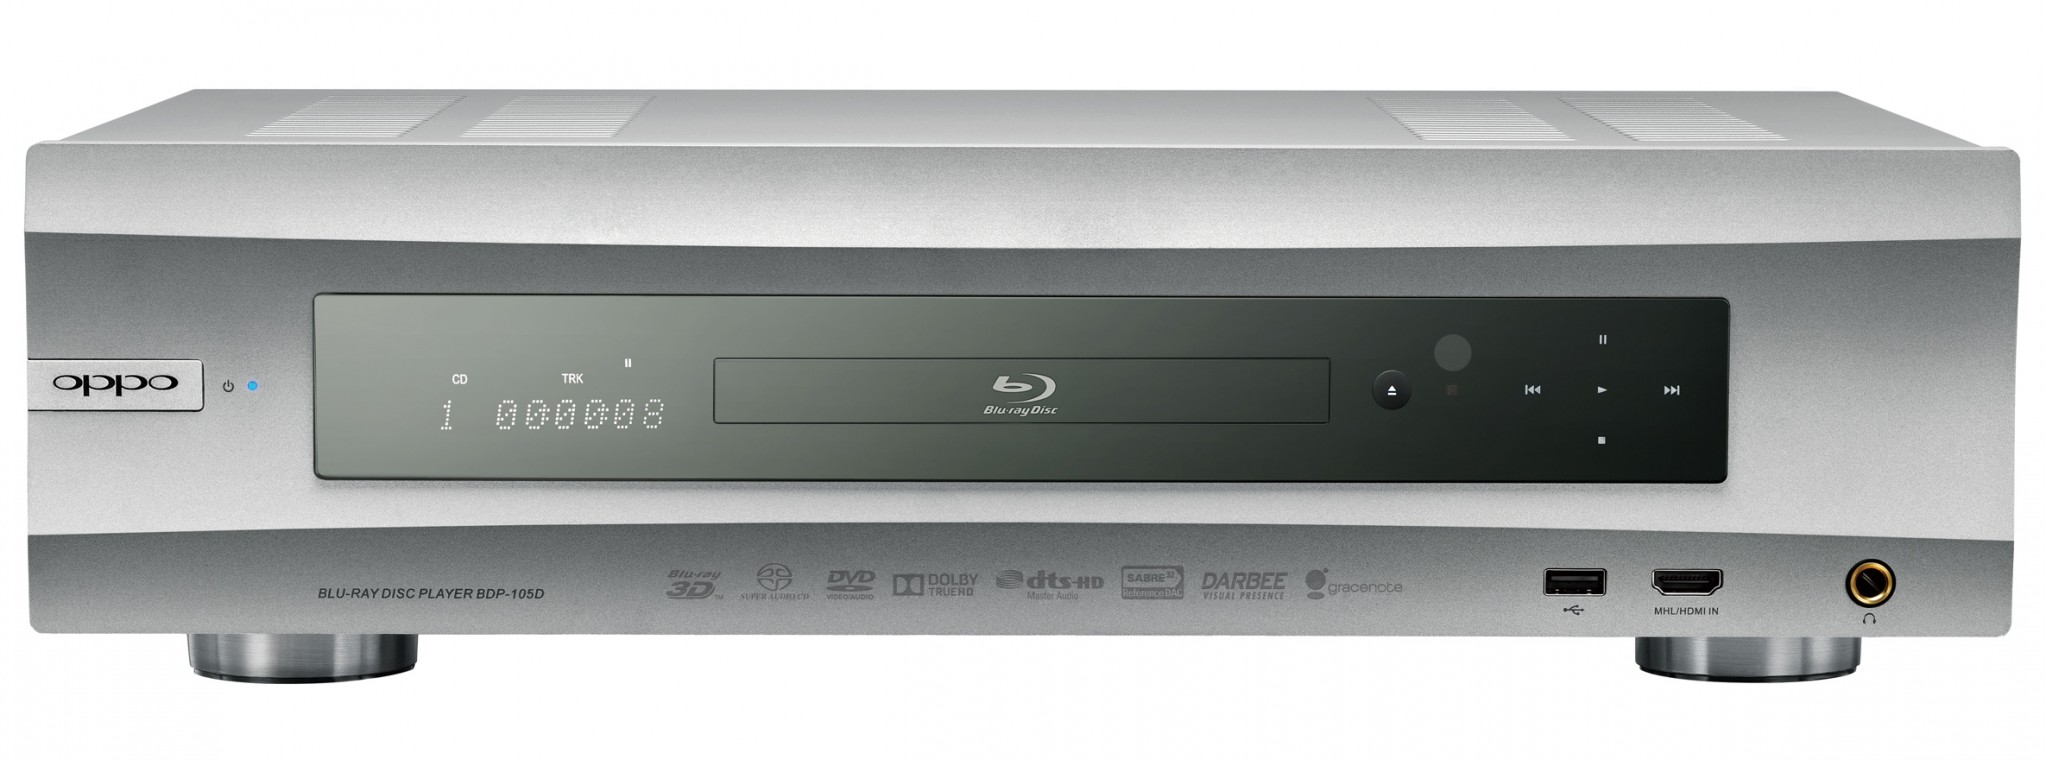 oppo_bdp_105d_silver_front.jpg